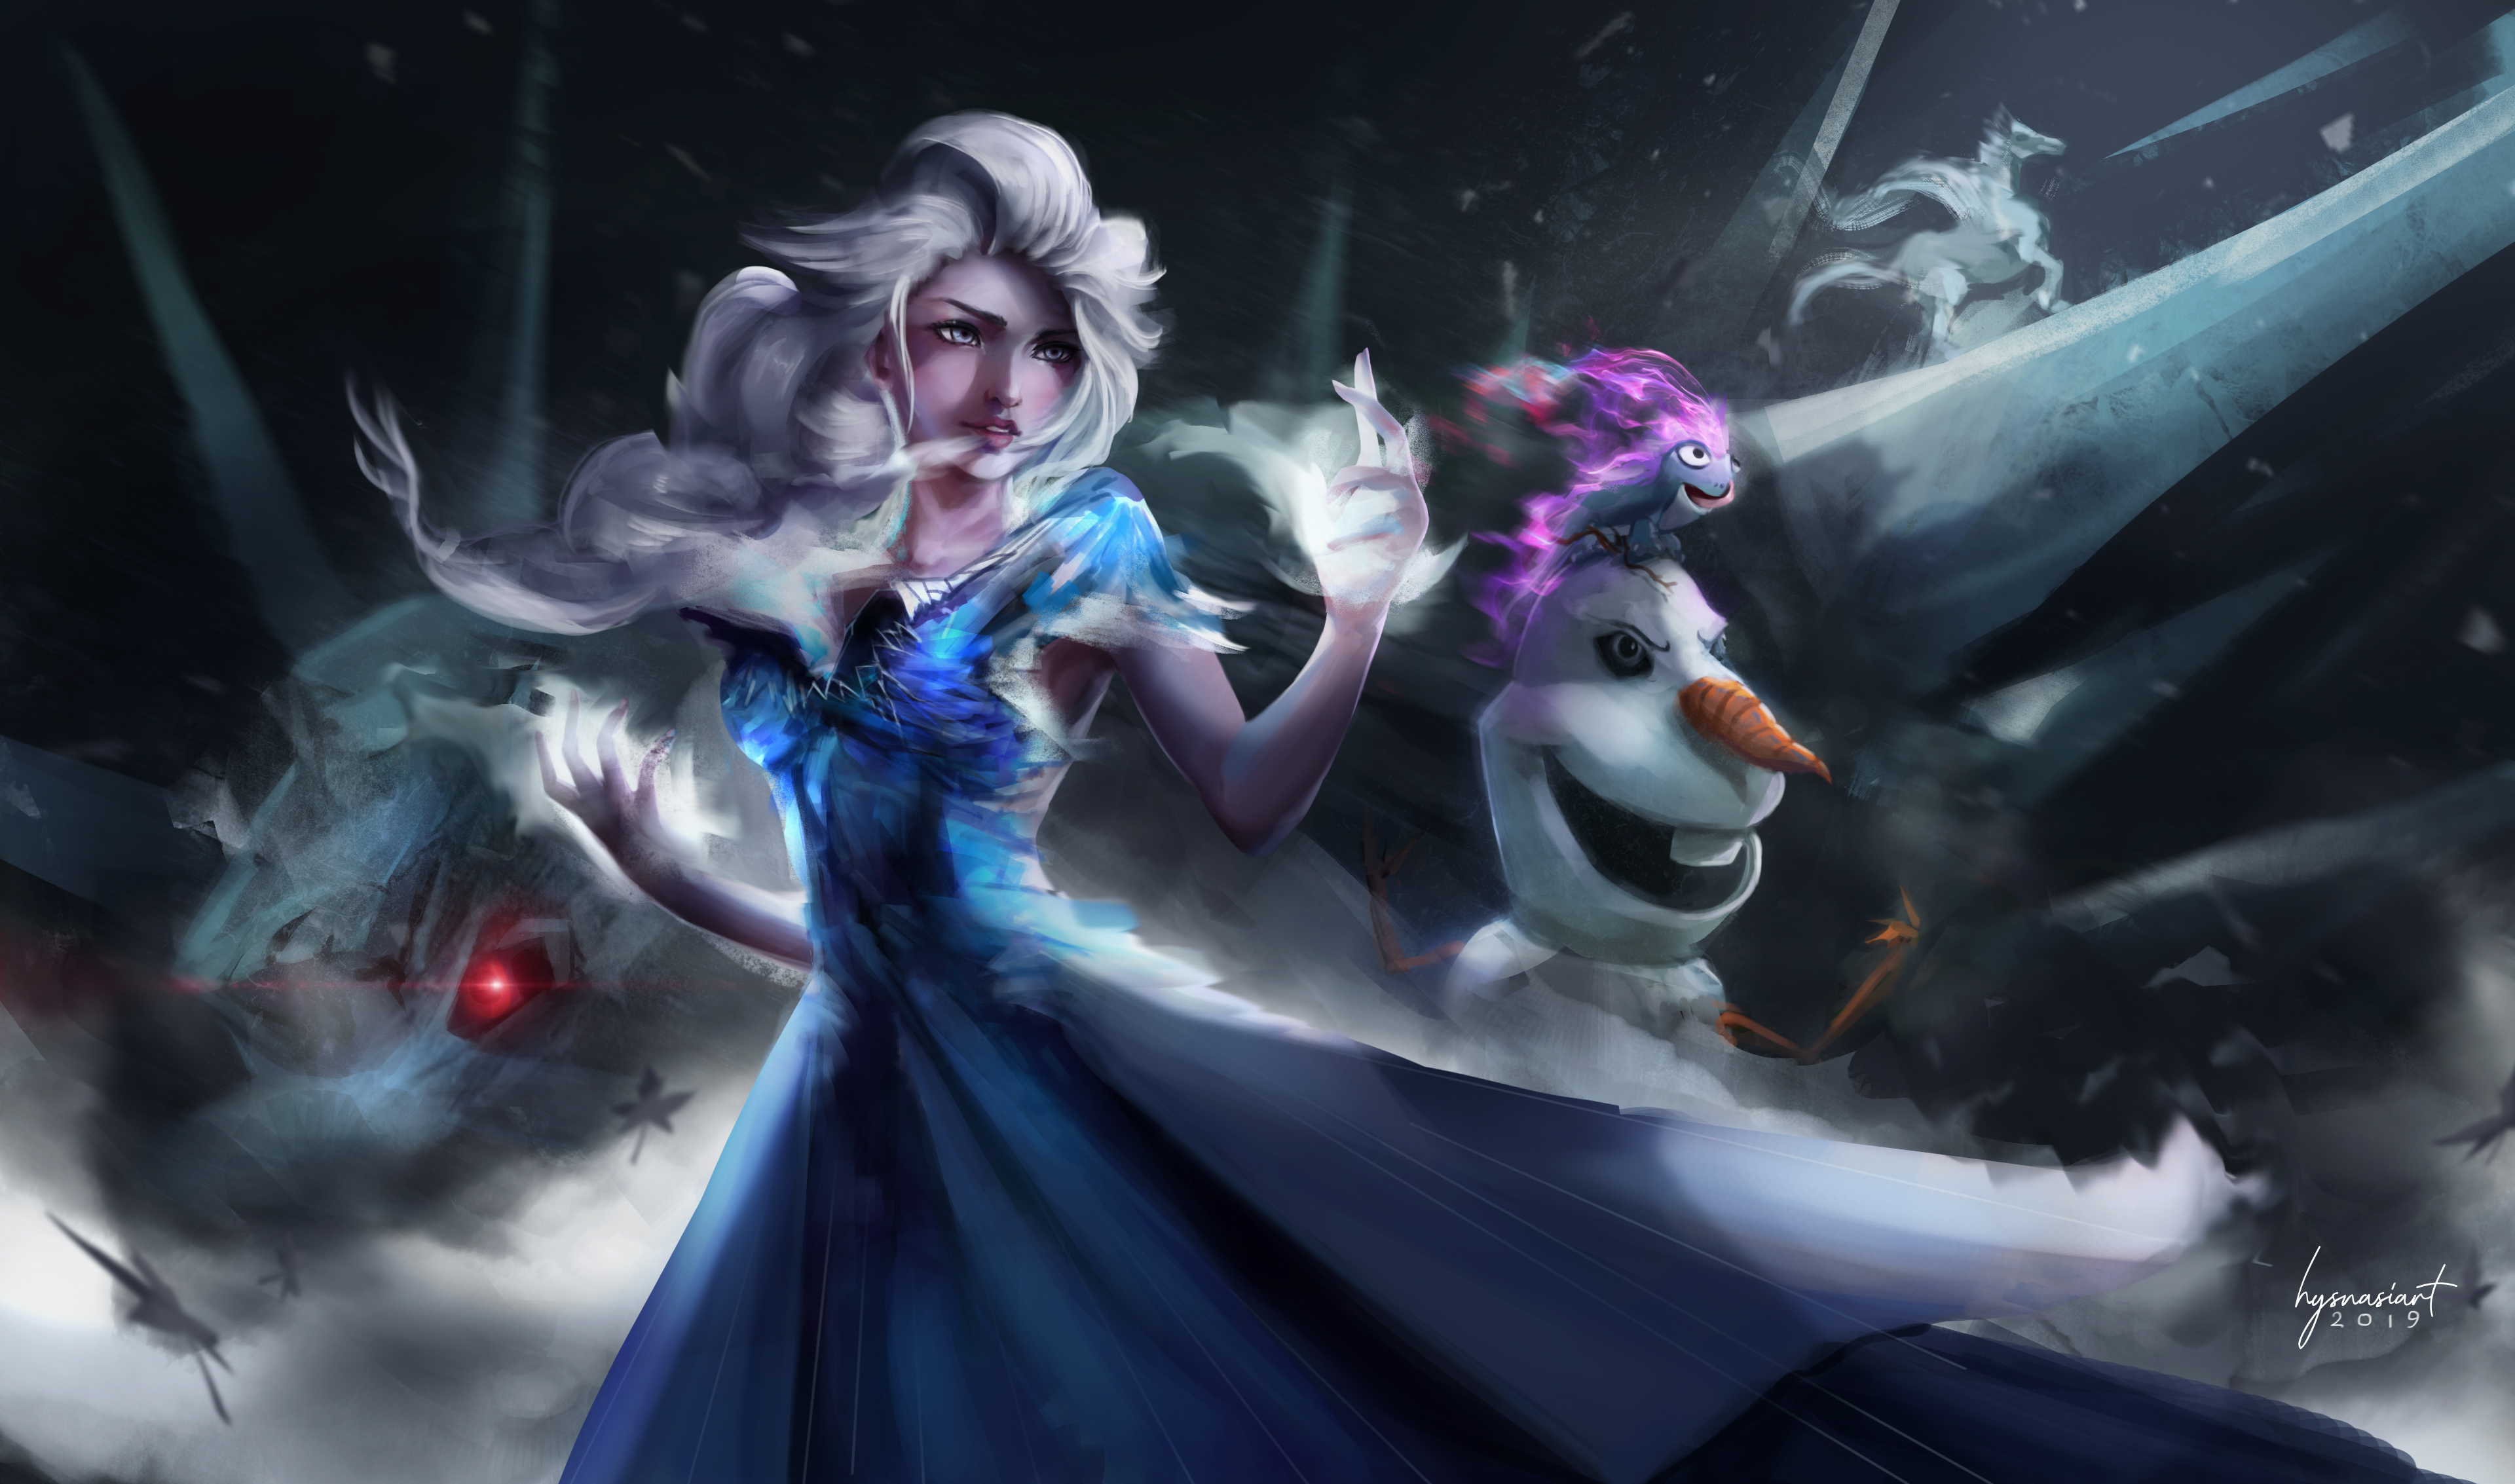 Frozen 2 Wallpapers, Pictures, Images